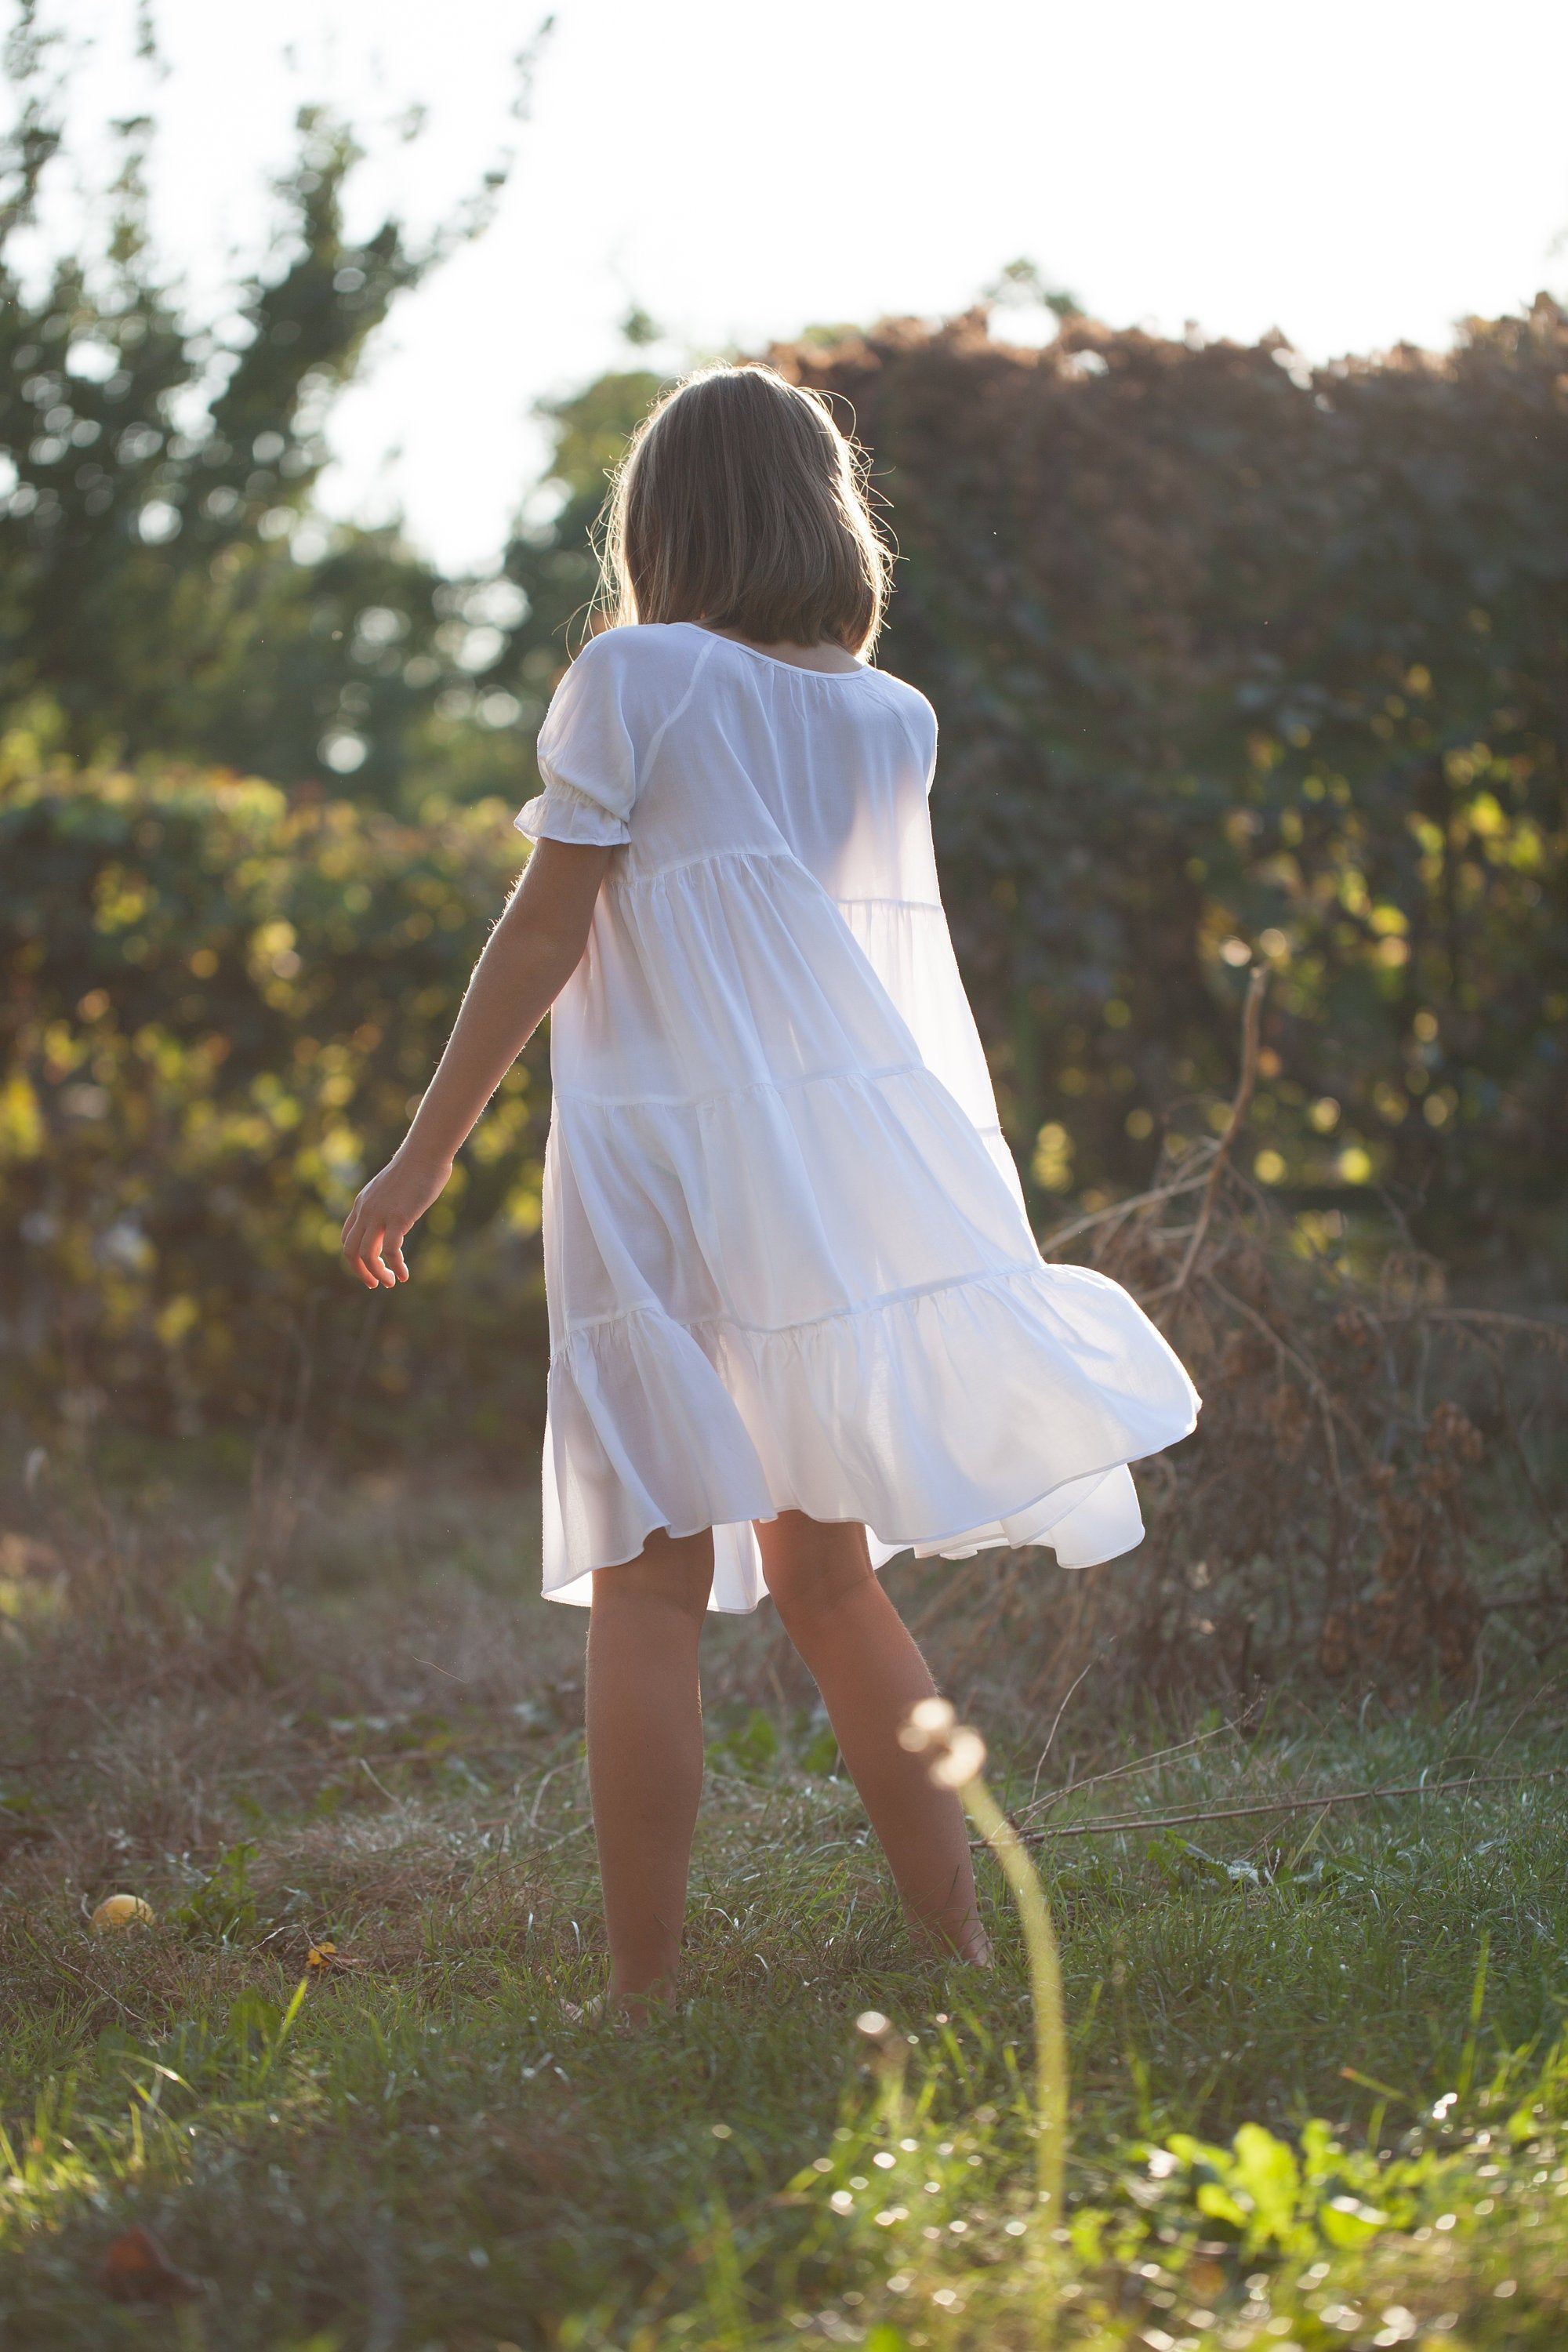 Pin by Krystopher on A | Cute little girl dresses, Cute